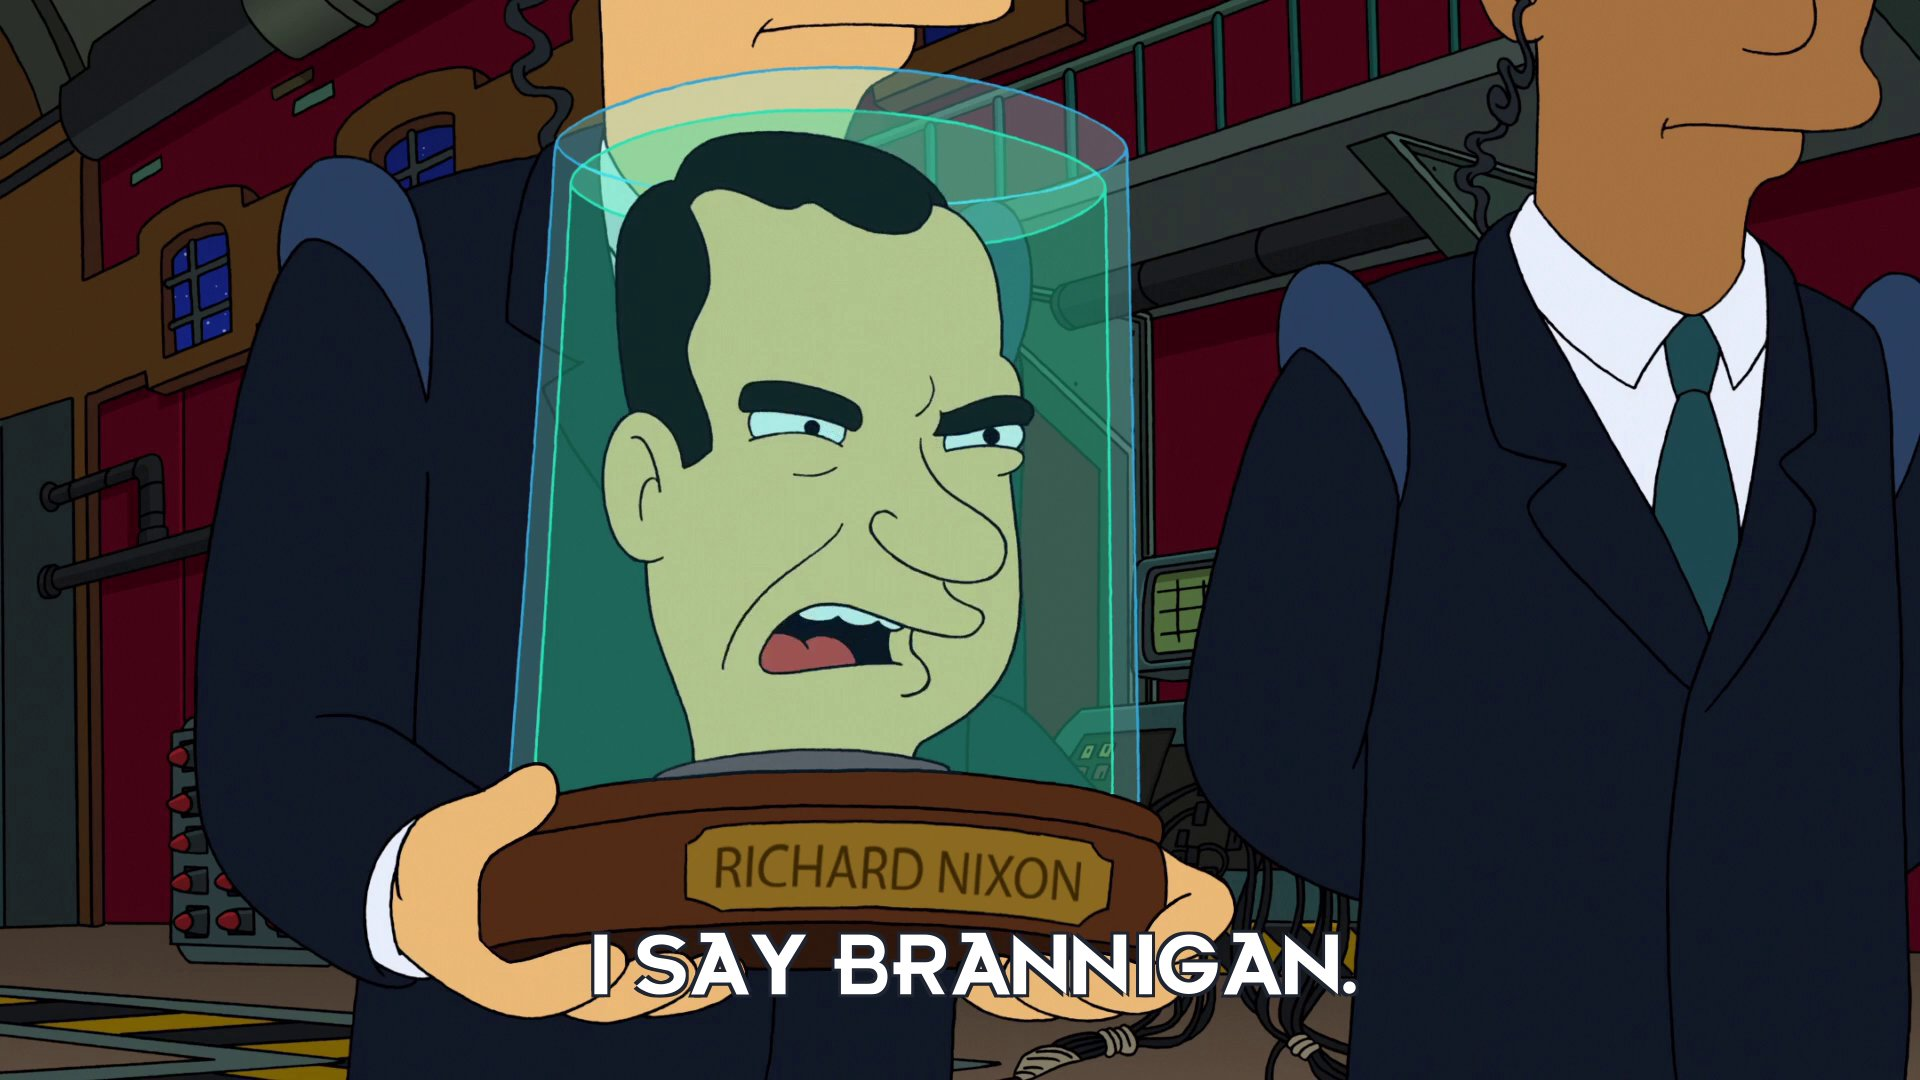 Richard Nixon's head: I say Brannigan.